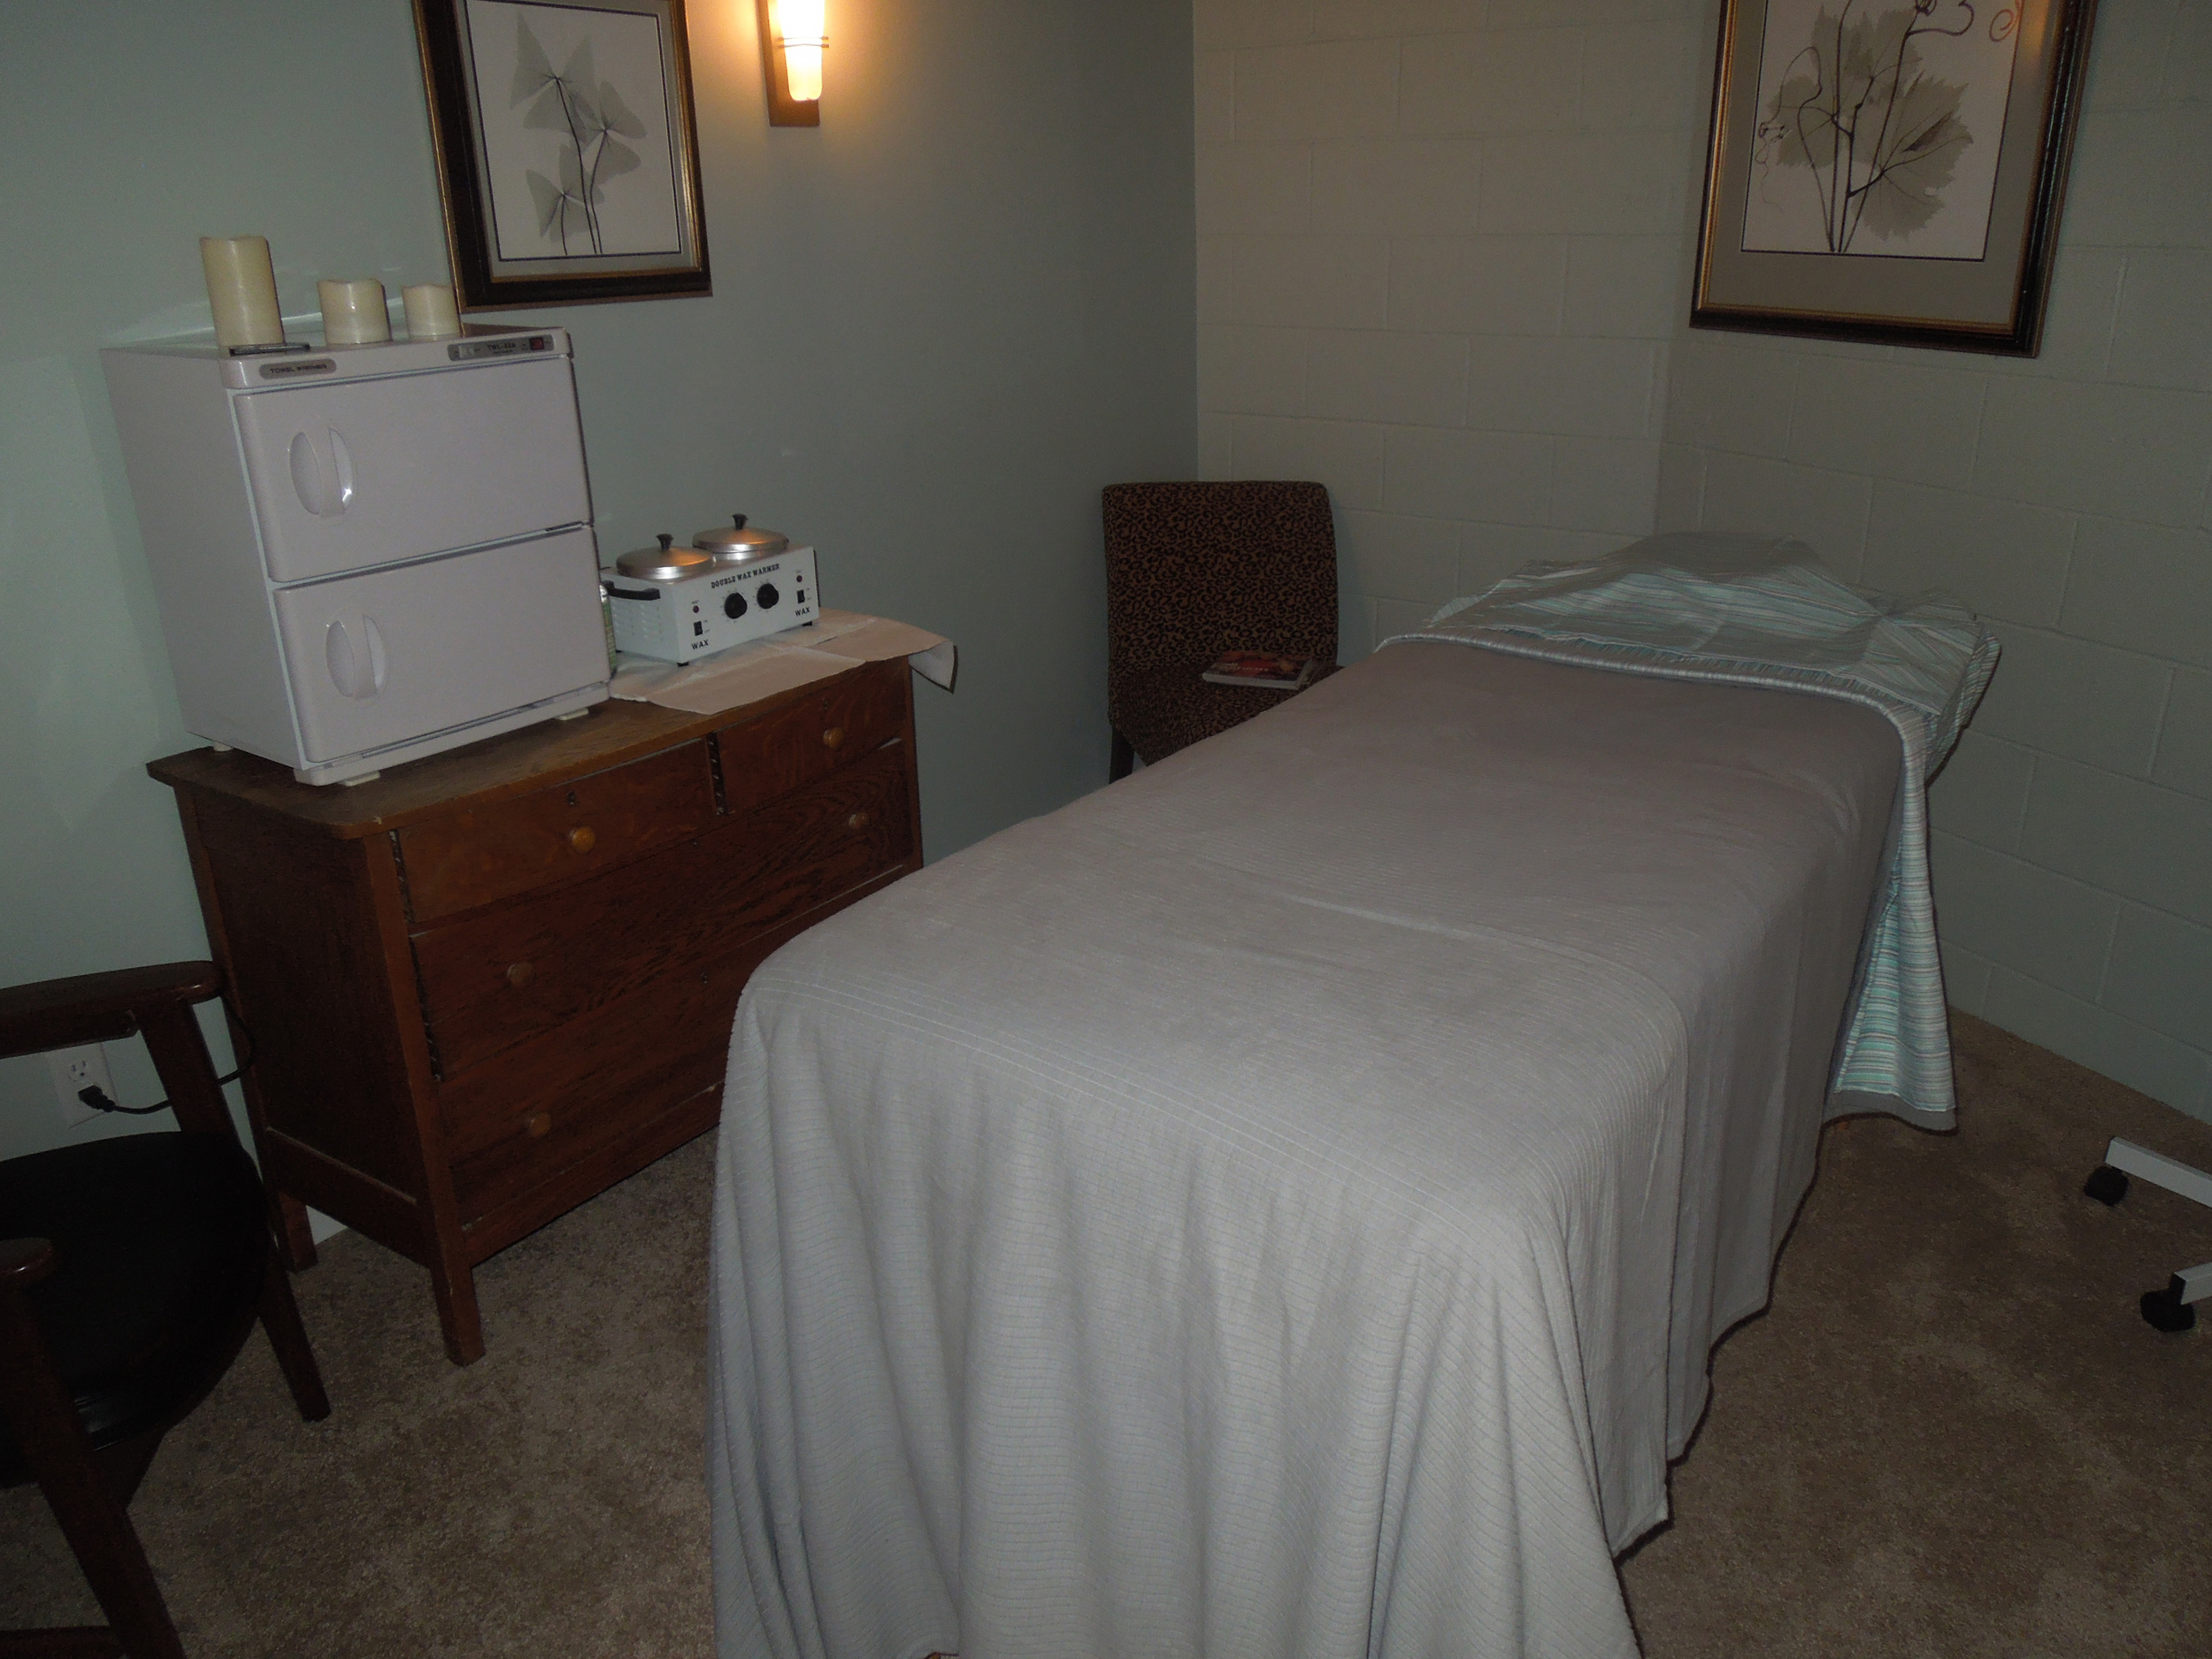 Quiet, clean, and private are what we strive to provide for each of our massage rooms.